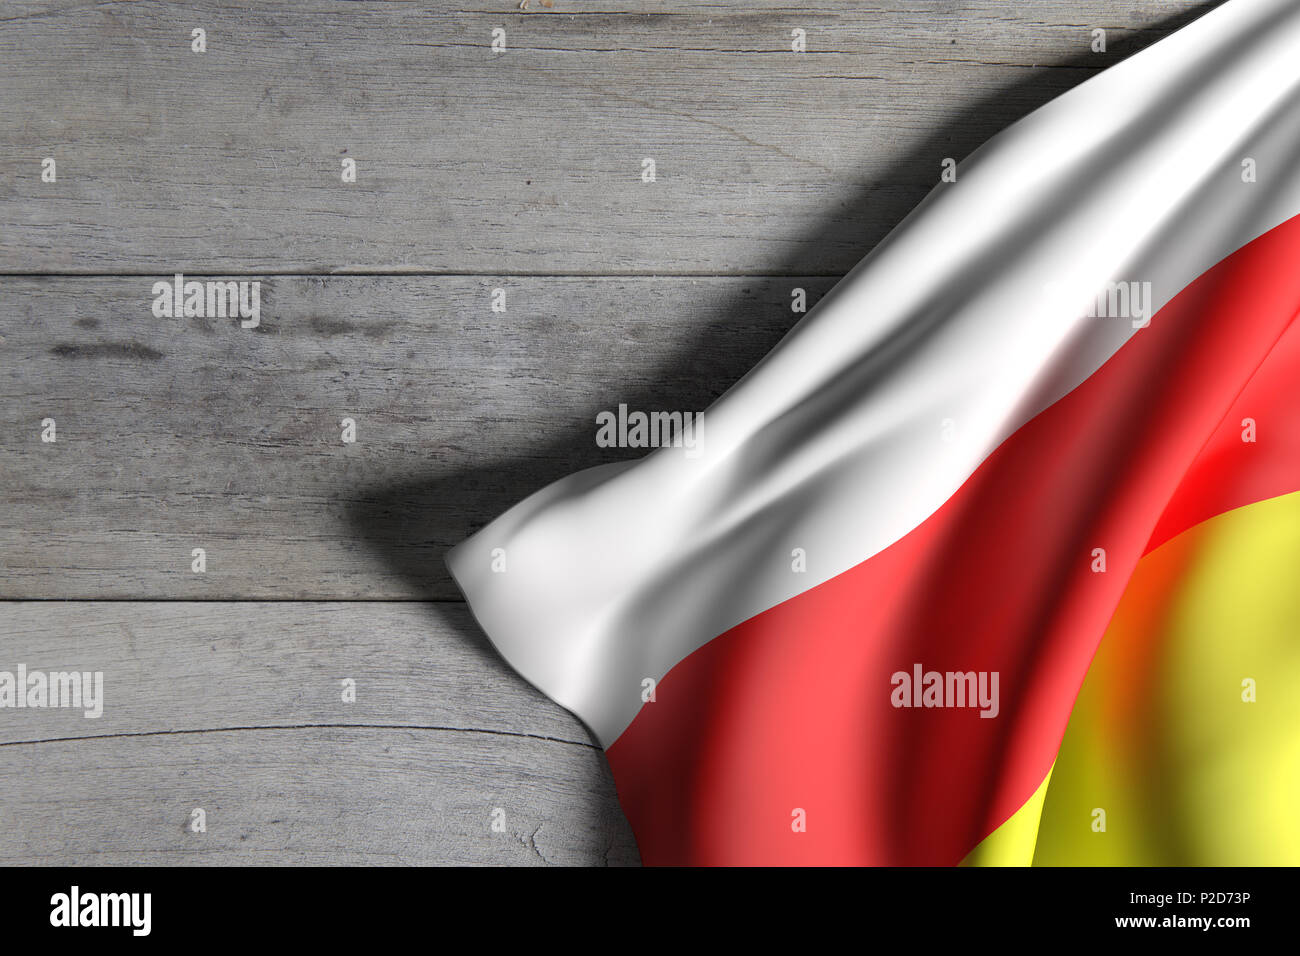 3d rendering of South Ossetia flag over a wooden surface - Stock Image